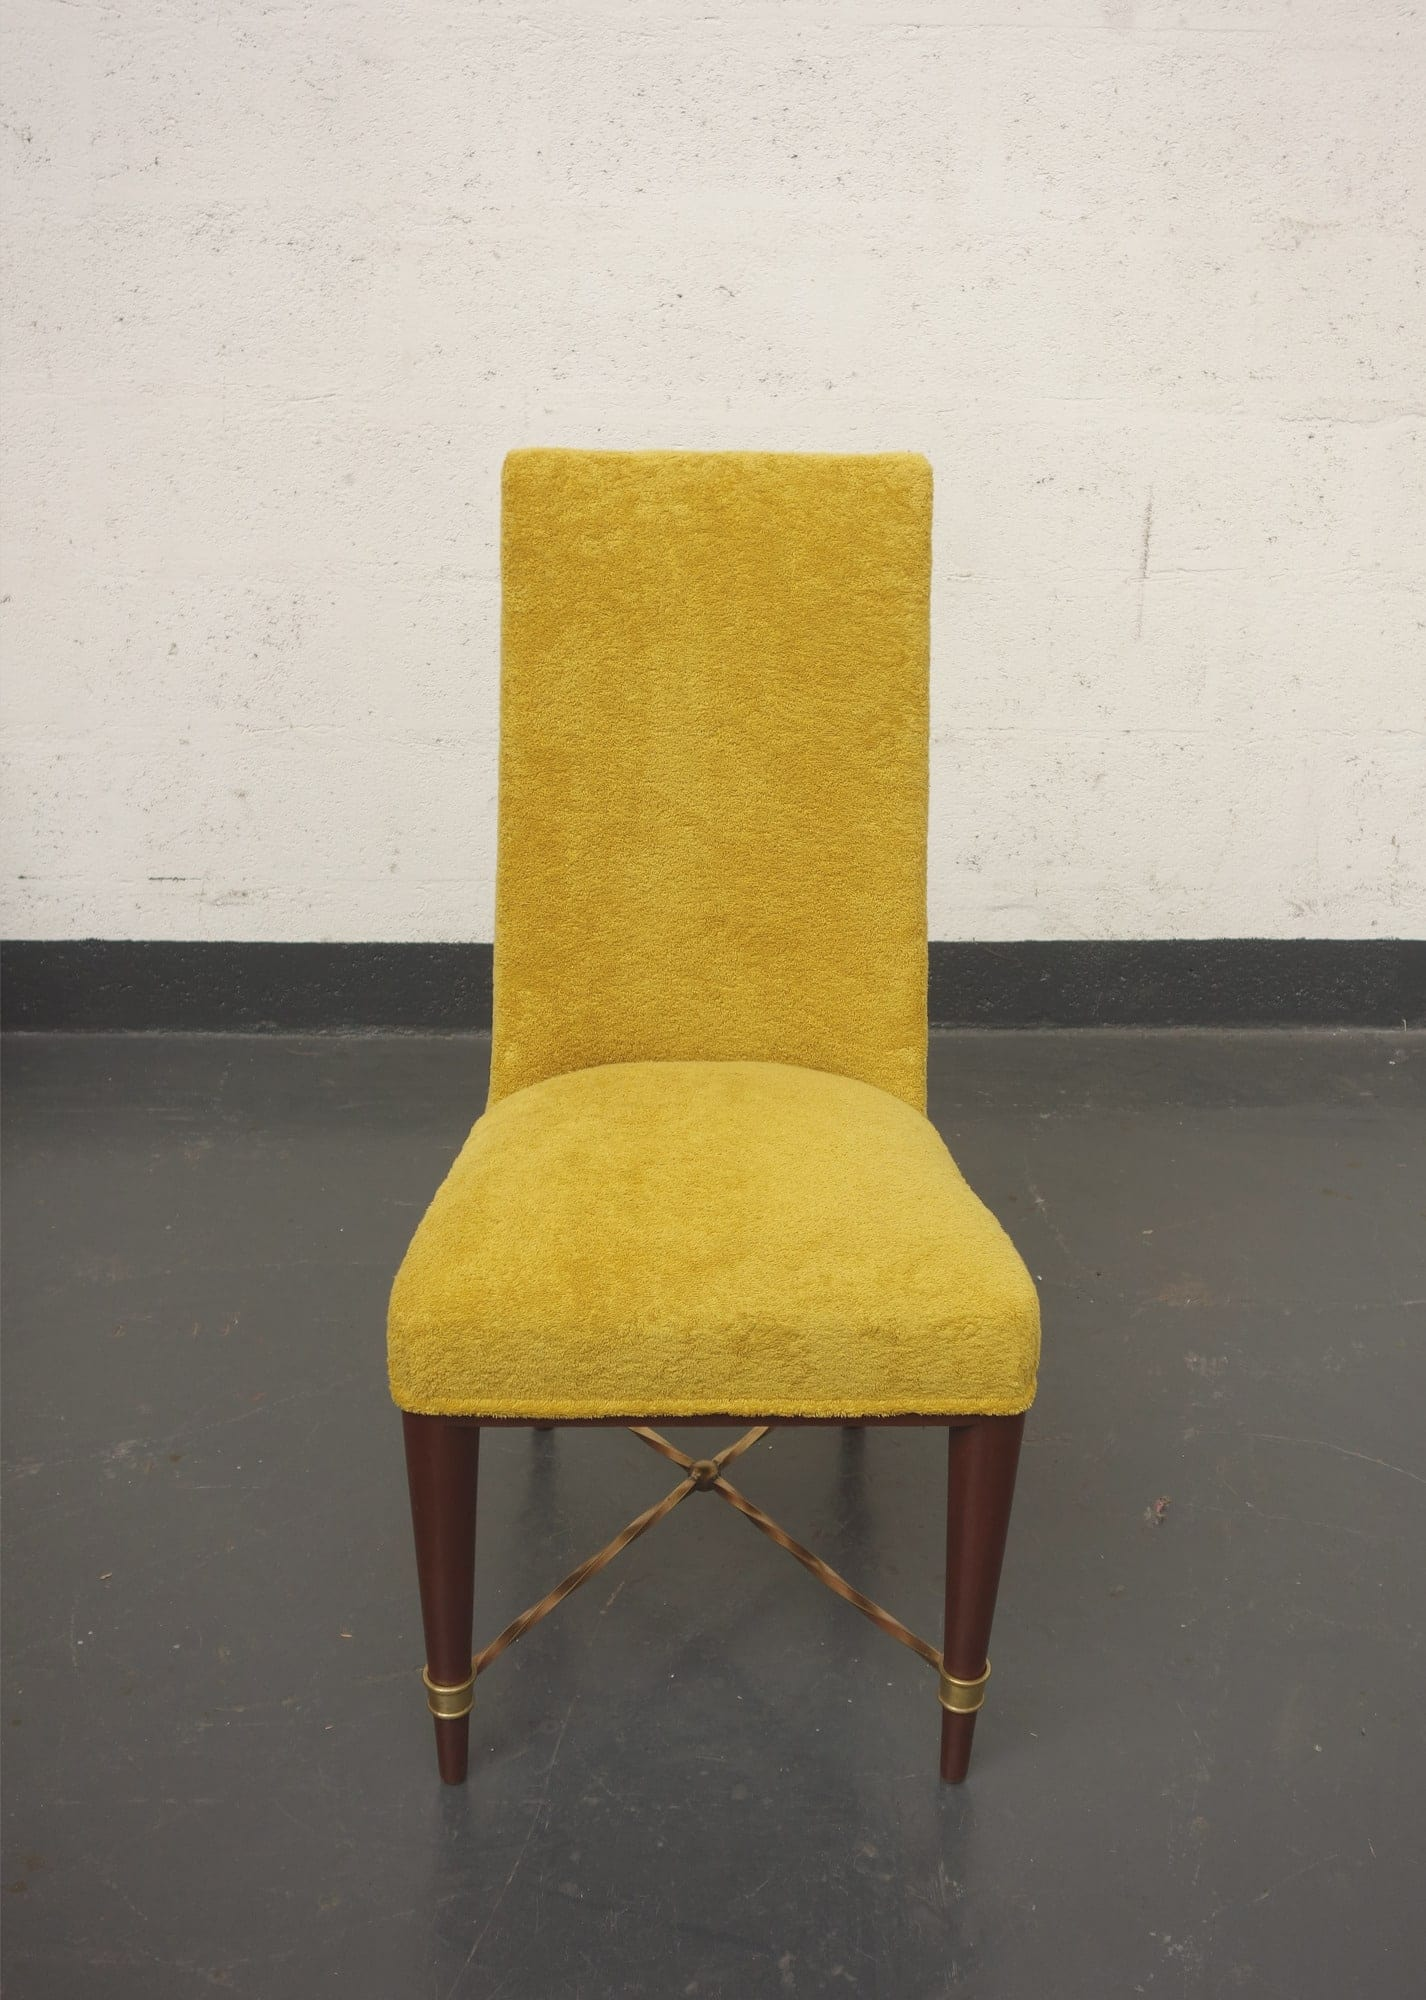 Jean Royère, Set of 8 chairs, vue 03